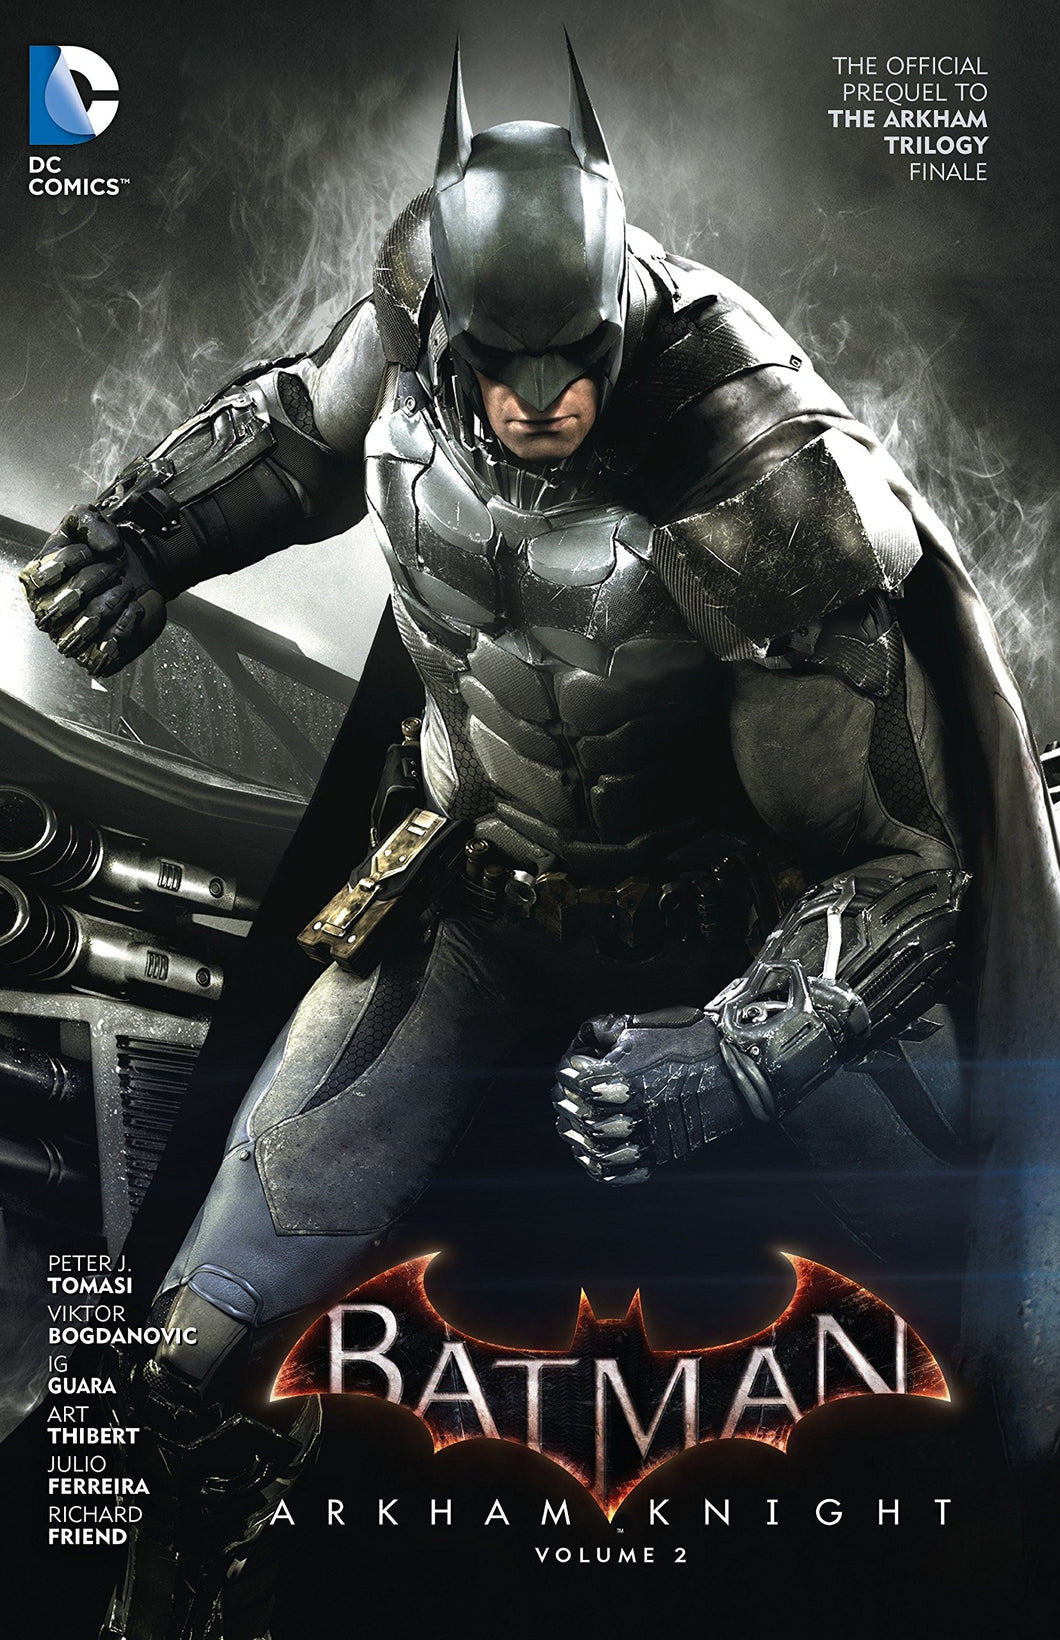 Batman : Arkham Knight Vol. 2 : The Official Prequel to the Arkham Trilogy Finale